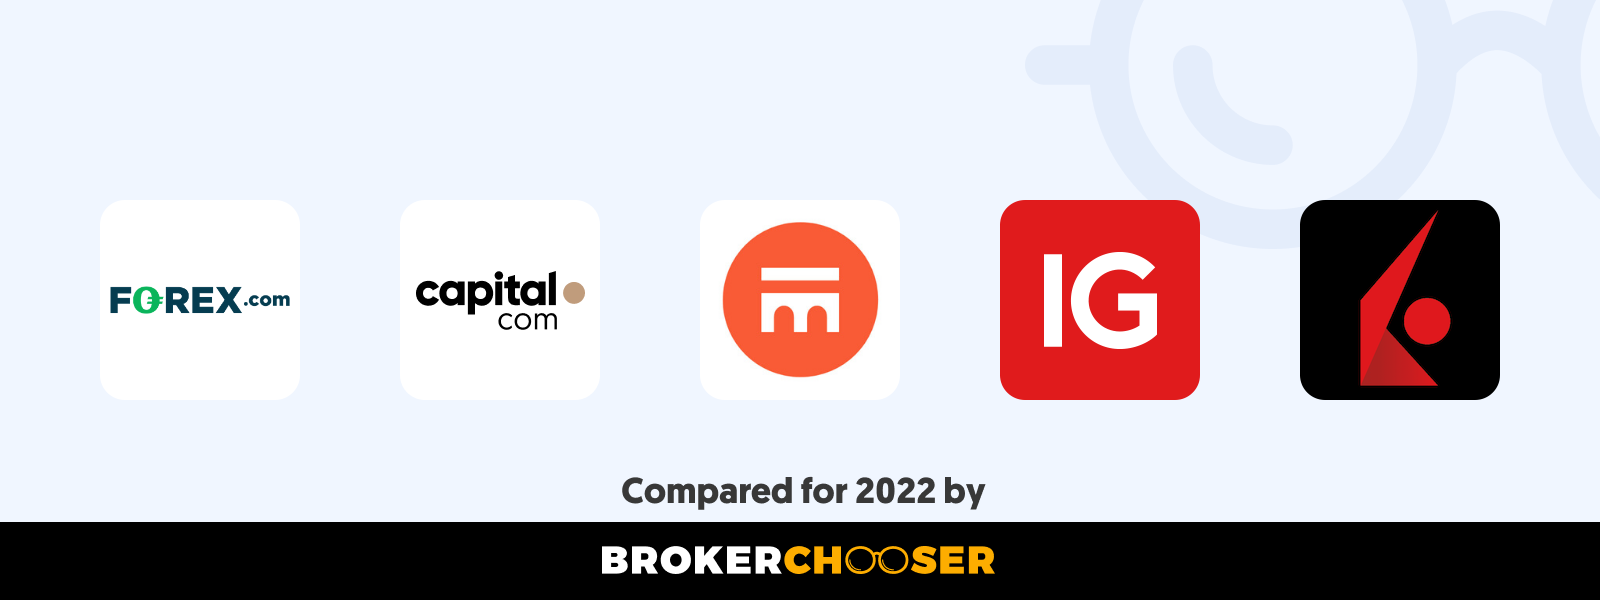 Best forex brokers for beginners in South Africa in 2021